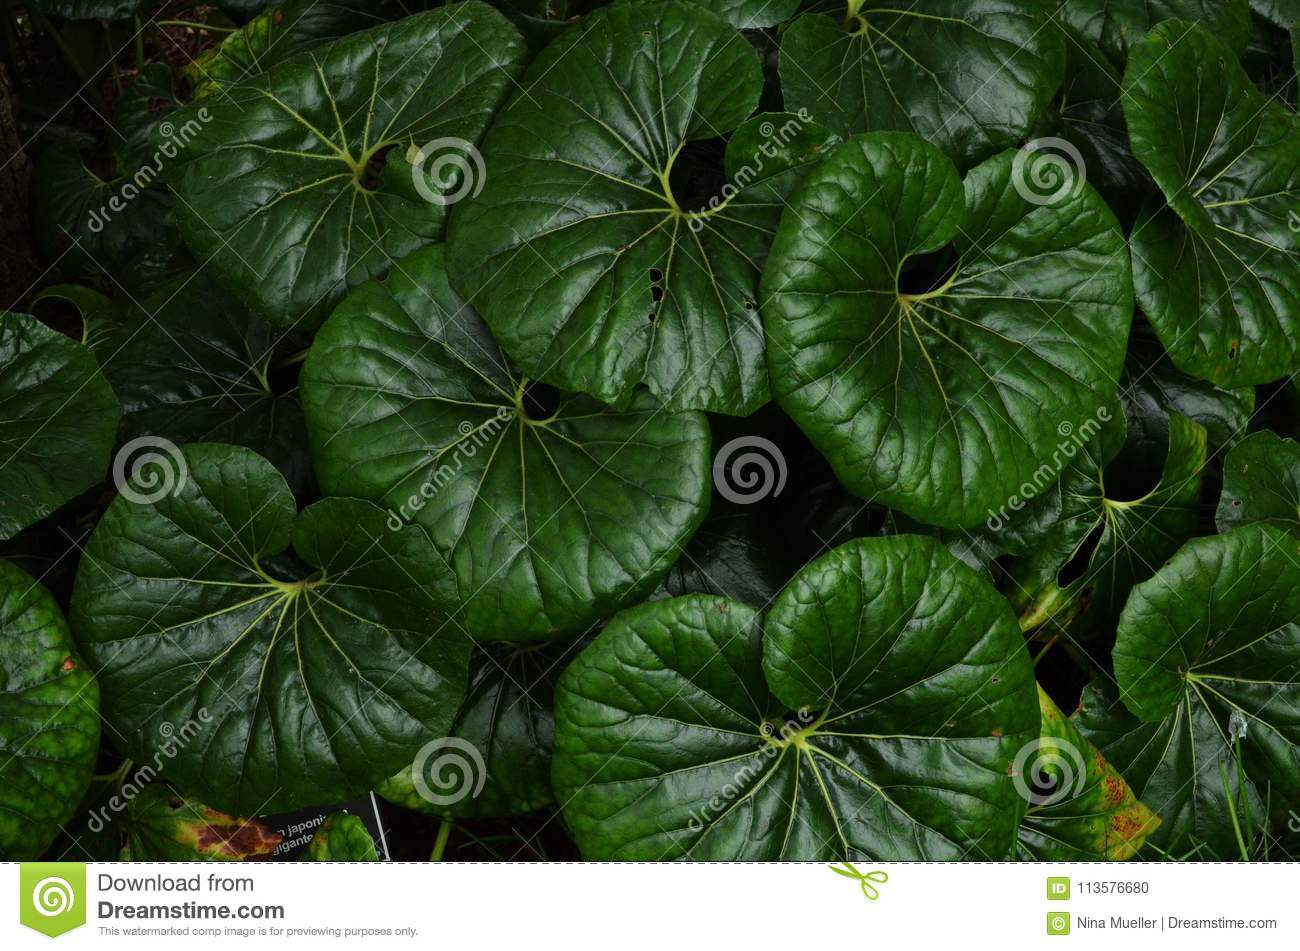 Tropical Green Leaves Wallpaper Stock Photo Image Of Beautiful Background 113576680 Tropical leaves exotic tropic leaf botanic vector. dreamstime com